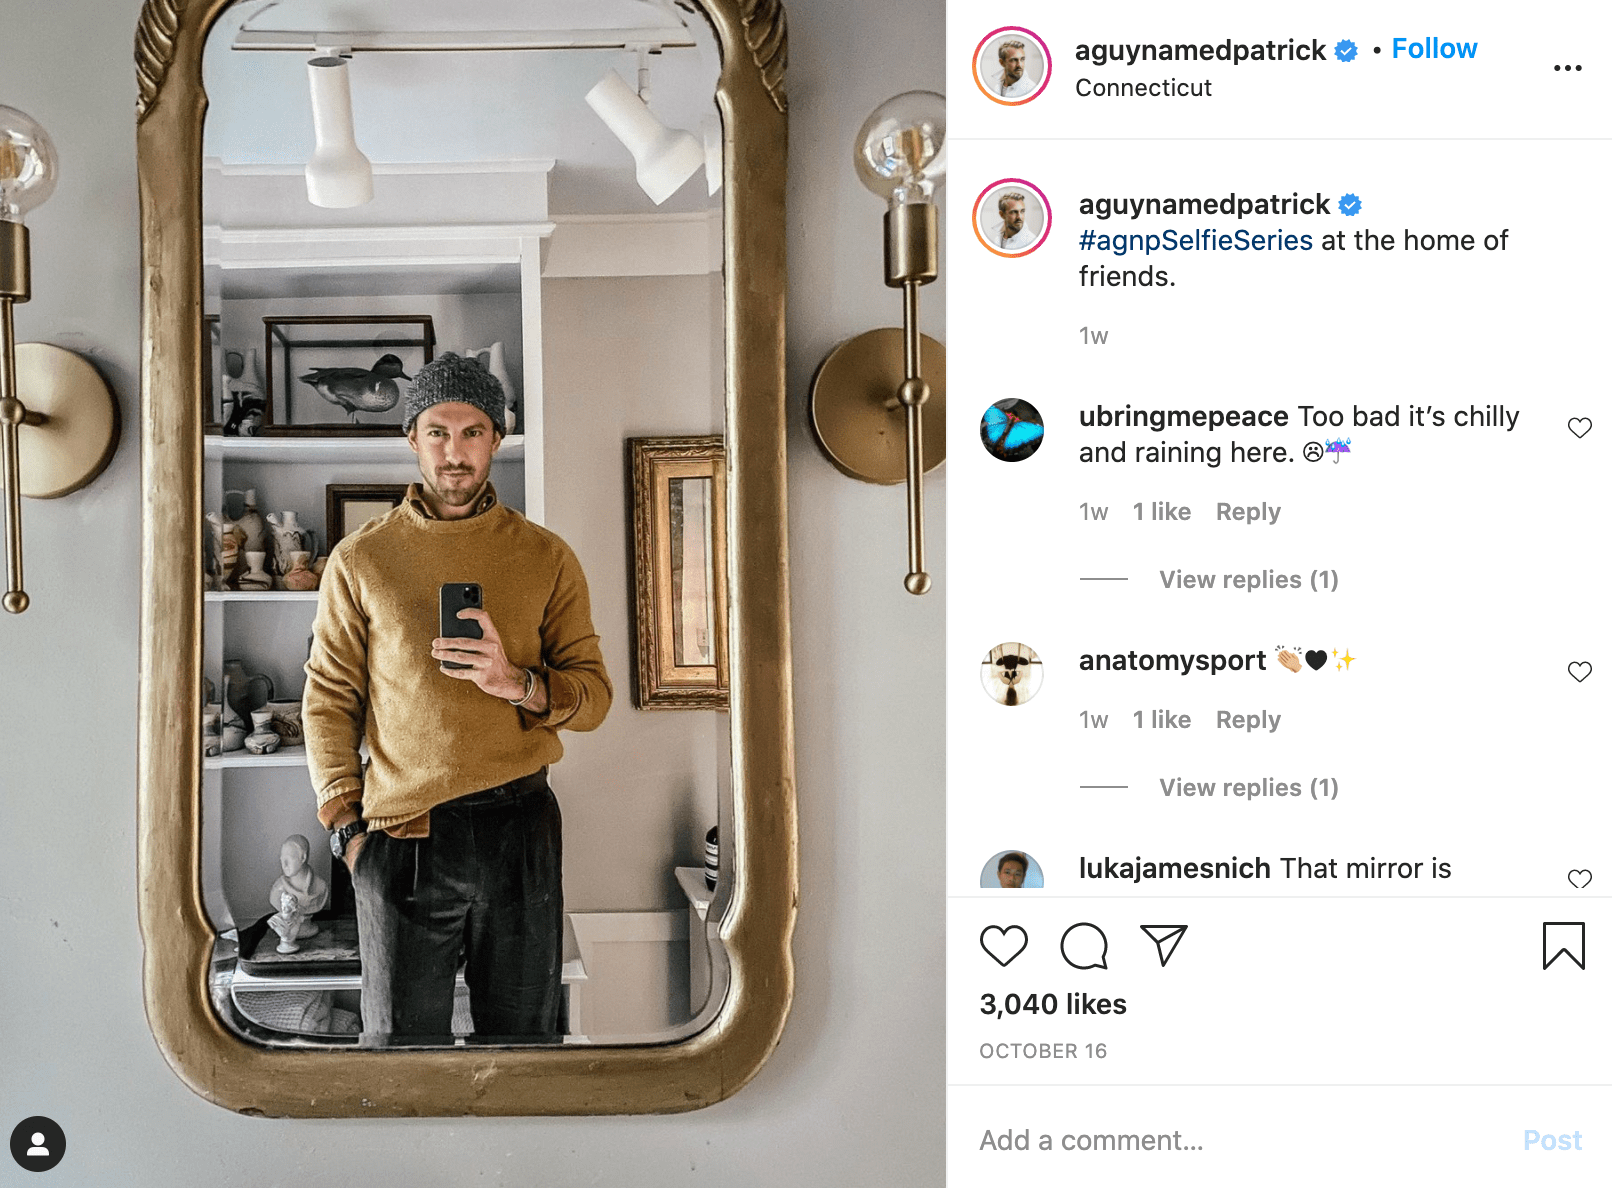 @aguynamedpatrick instagram picture of himself in mirror holding a phone taking a picture of himself